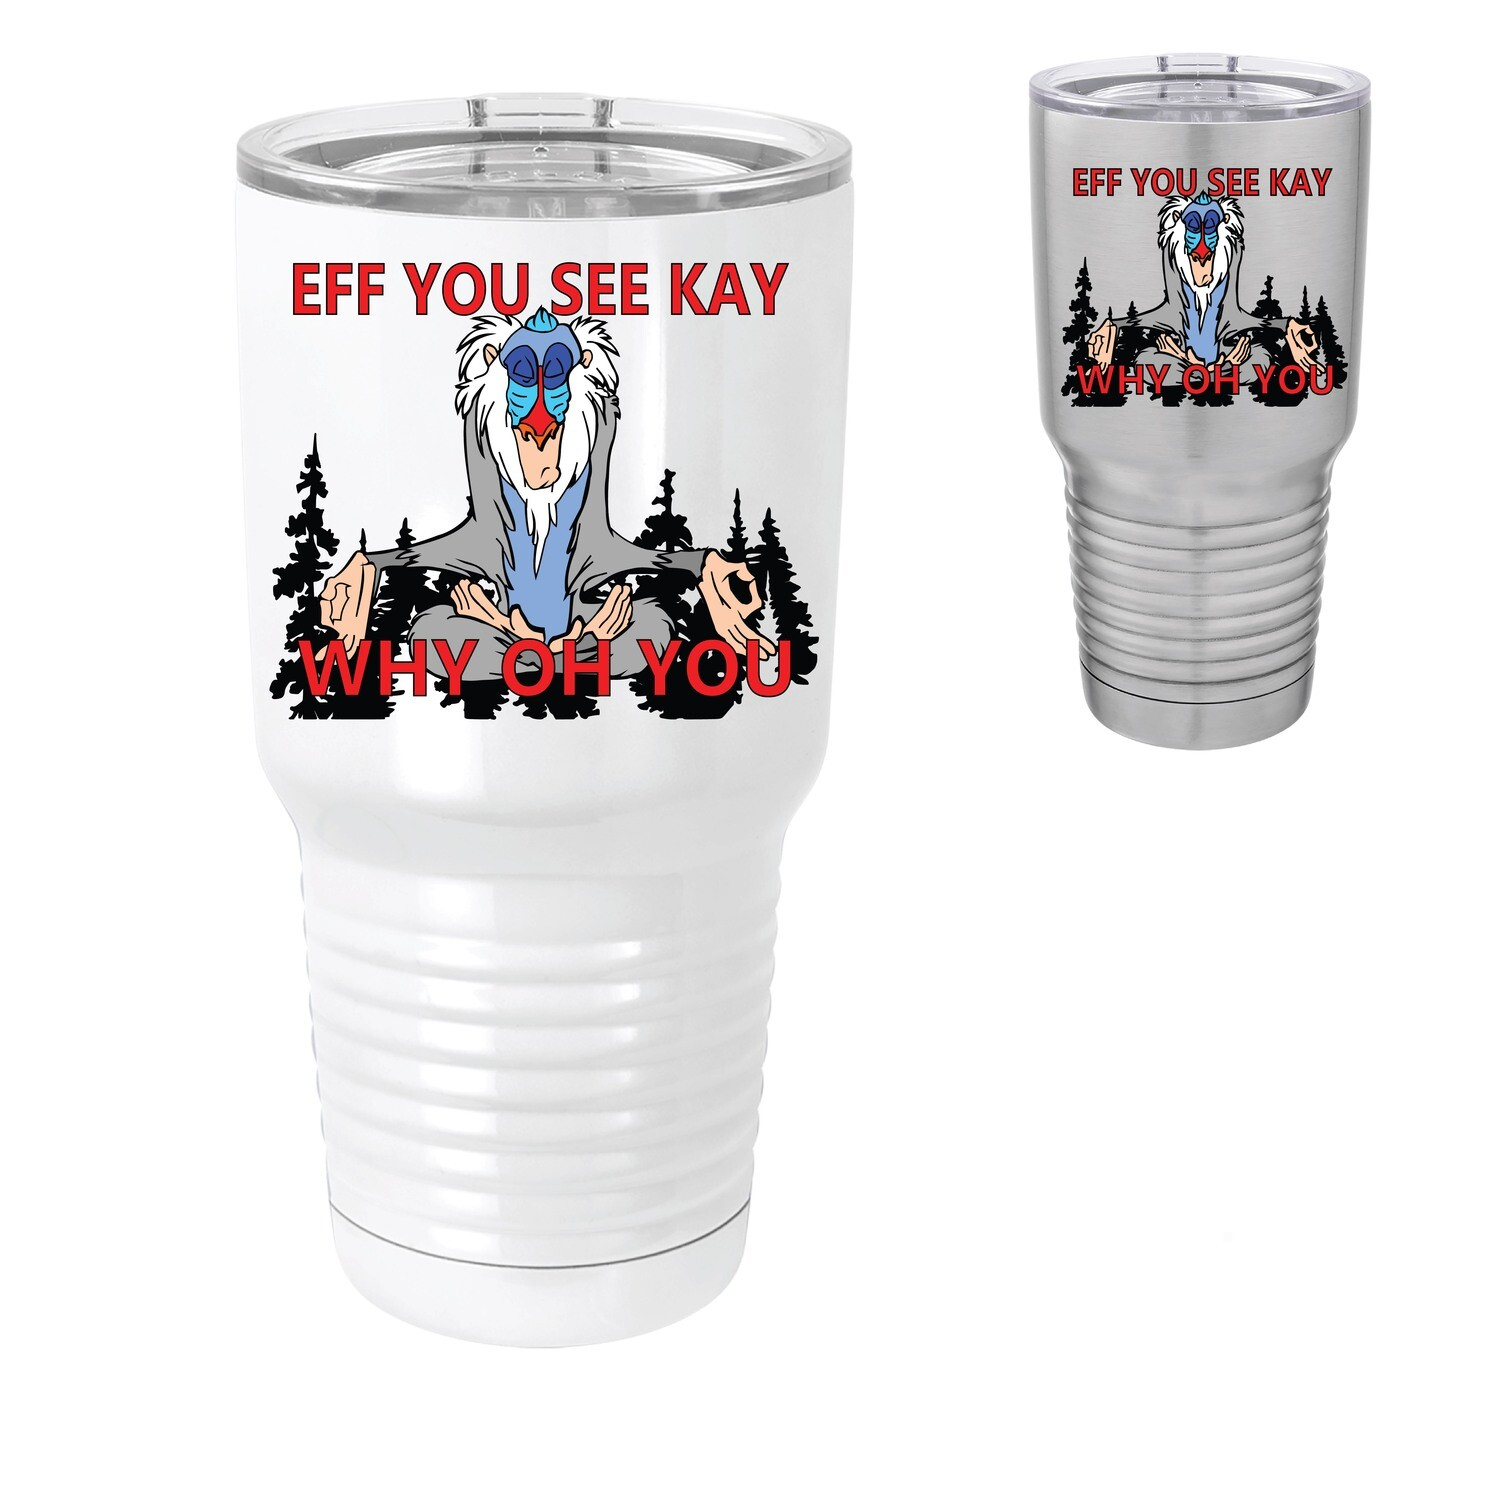 EFF YOU SEE KAY WHY OH YOU Stainless Steel 2X Insulated Tumbler (30 oz)